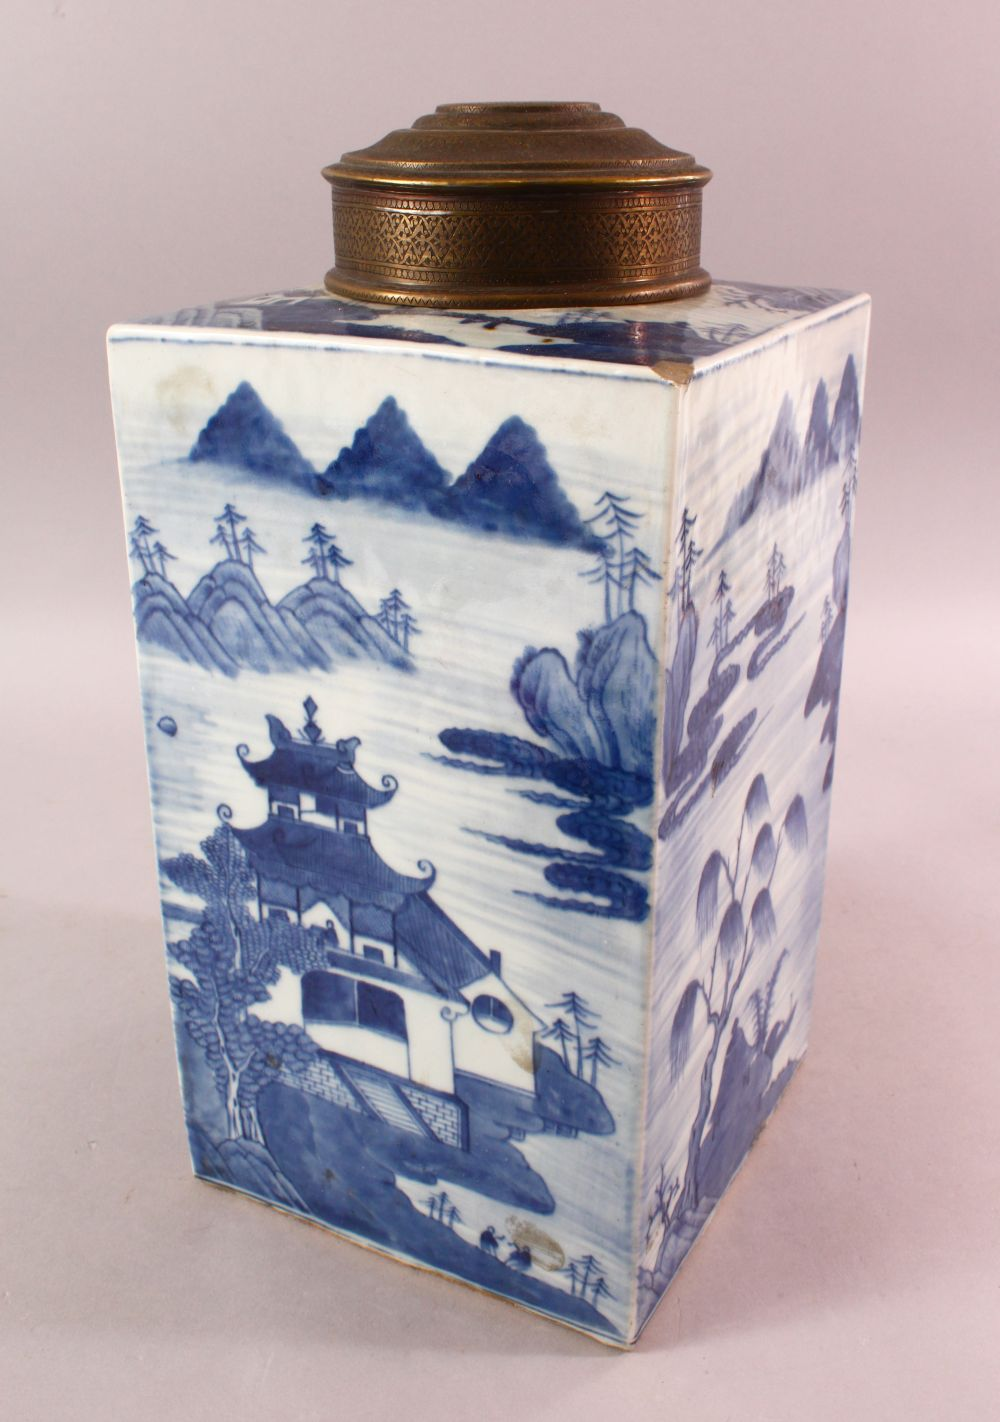 A LARGE CHINESE 18TH / 19TH CENTURY CHINESE BLUE & WHITE CADDY, decorated with landscape views, with